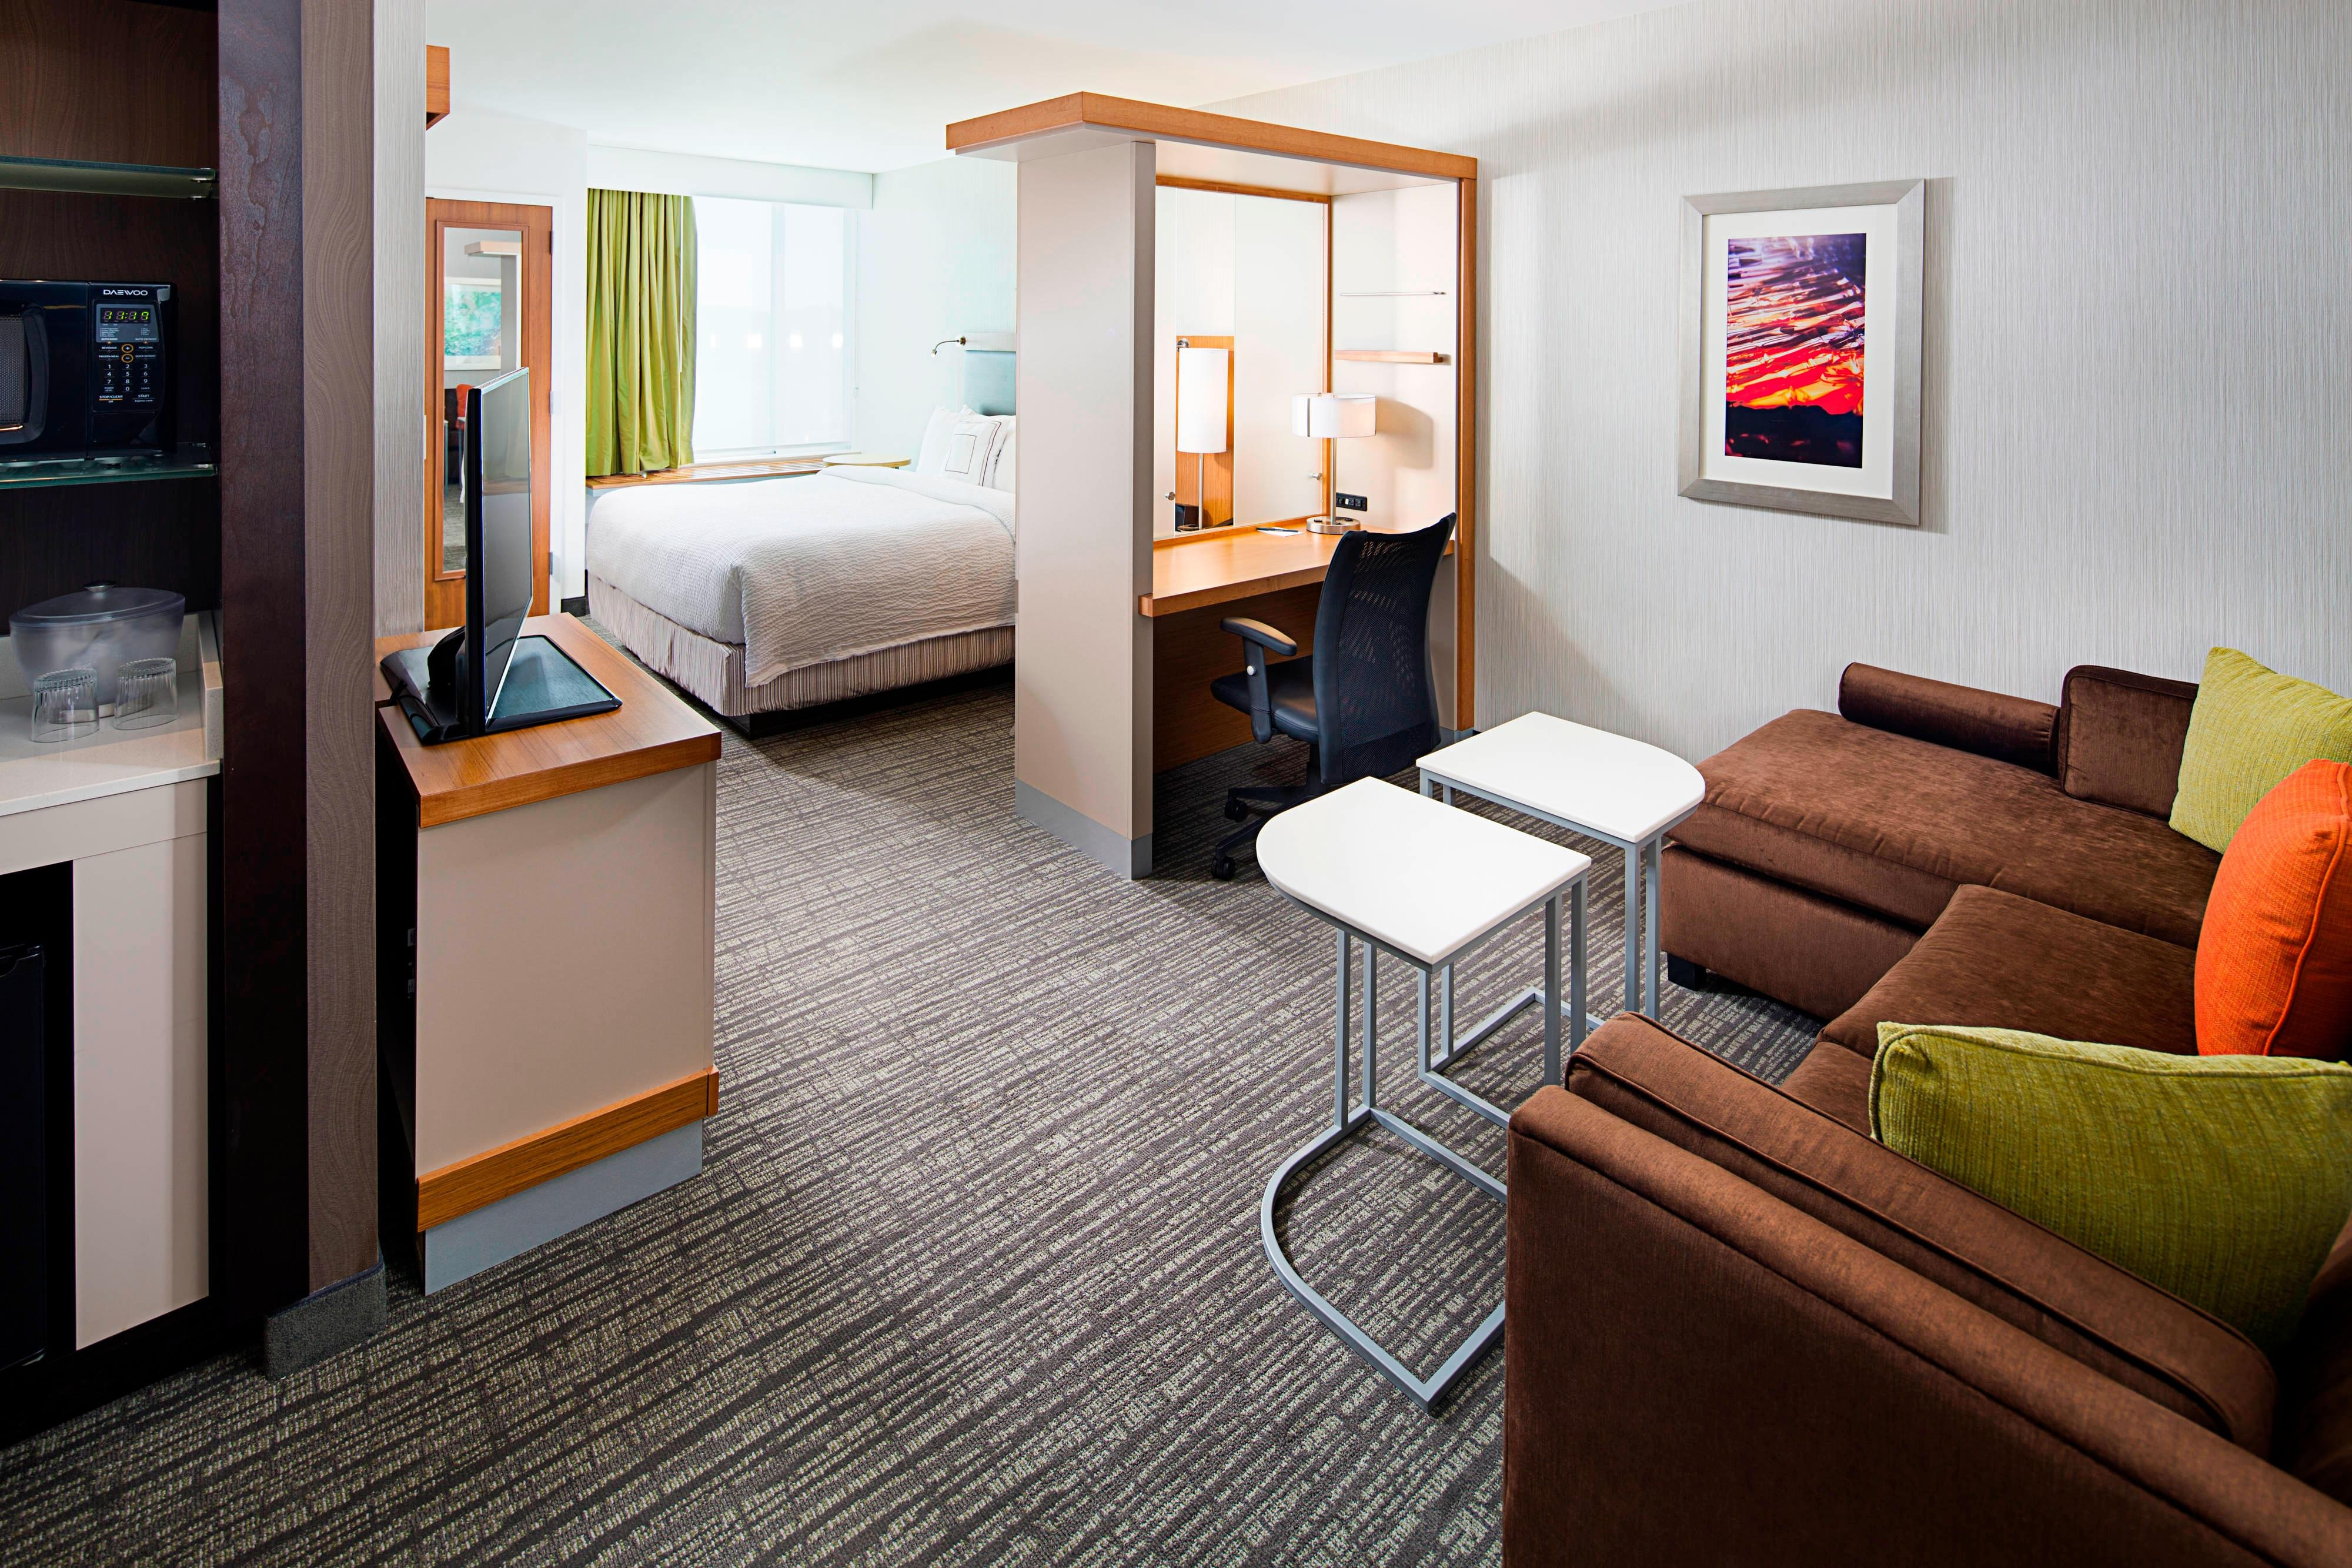 Garden city ny hotels springhill suites carle place for Springhill suites carle place garden city